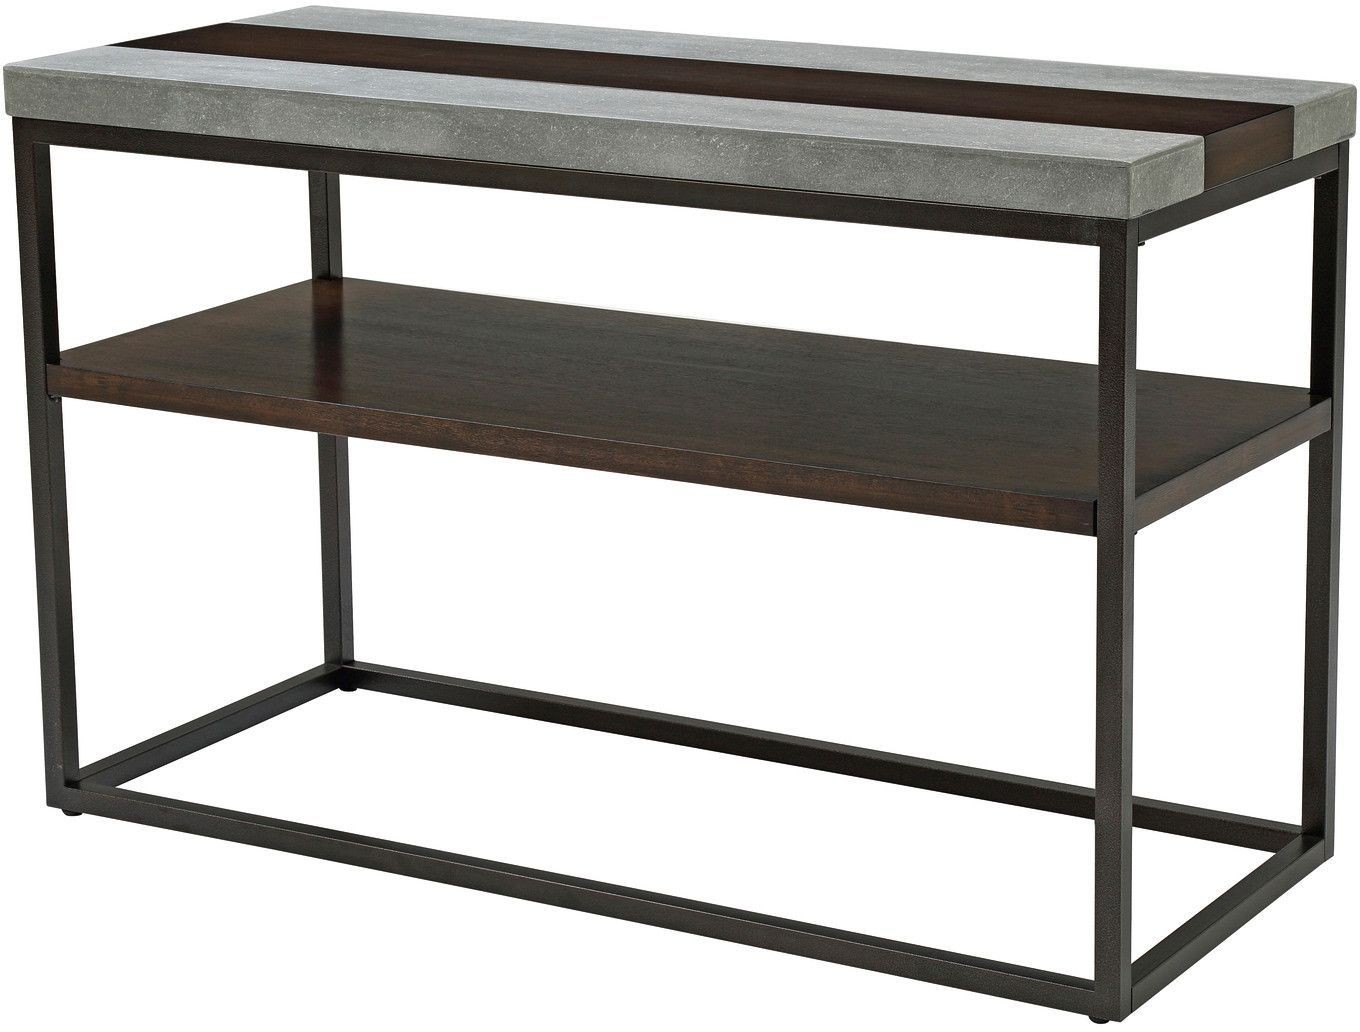 Stoneworks Merlot Natural Stone Sofa Table From Emerald